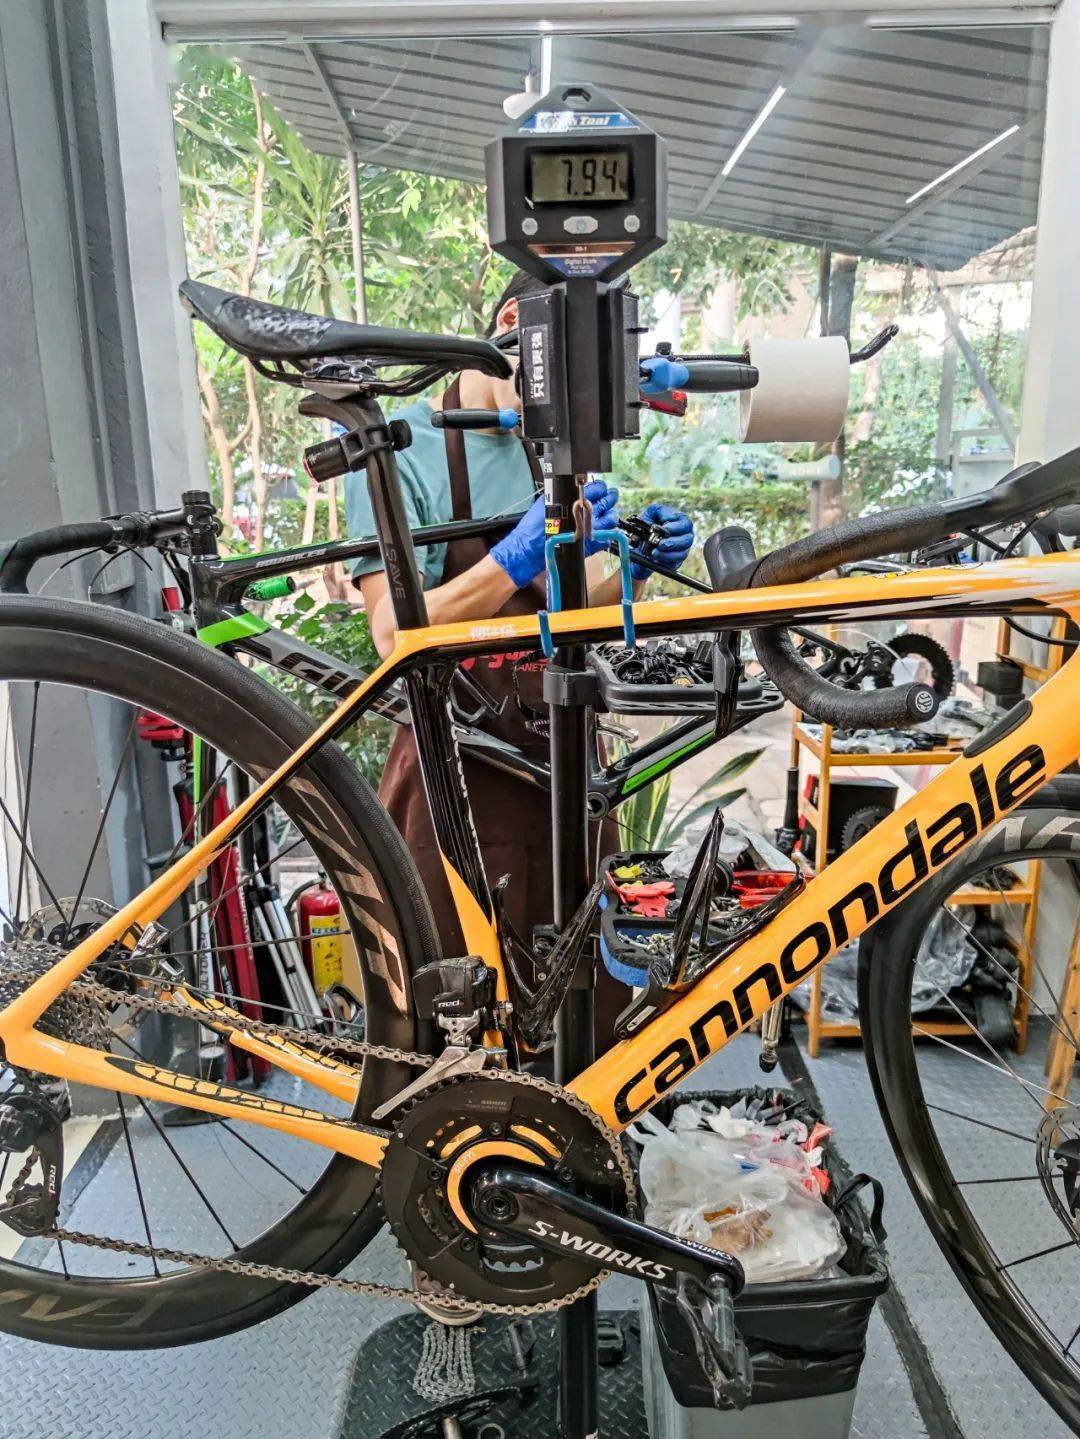 Cannondale BB30A硬上SPECIALIZED S-Works曲柄?五通中轴兼容性探讨-领骑网